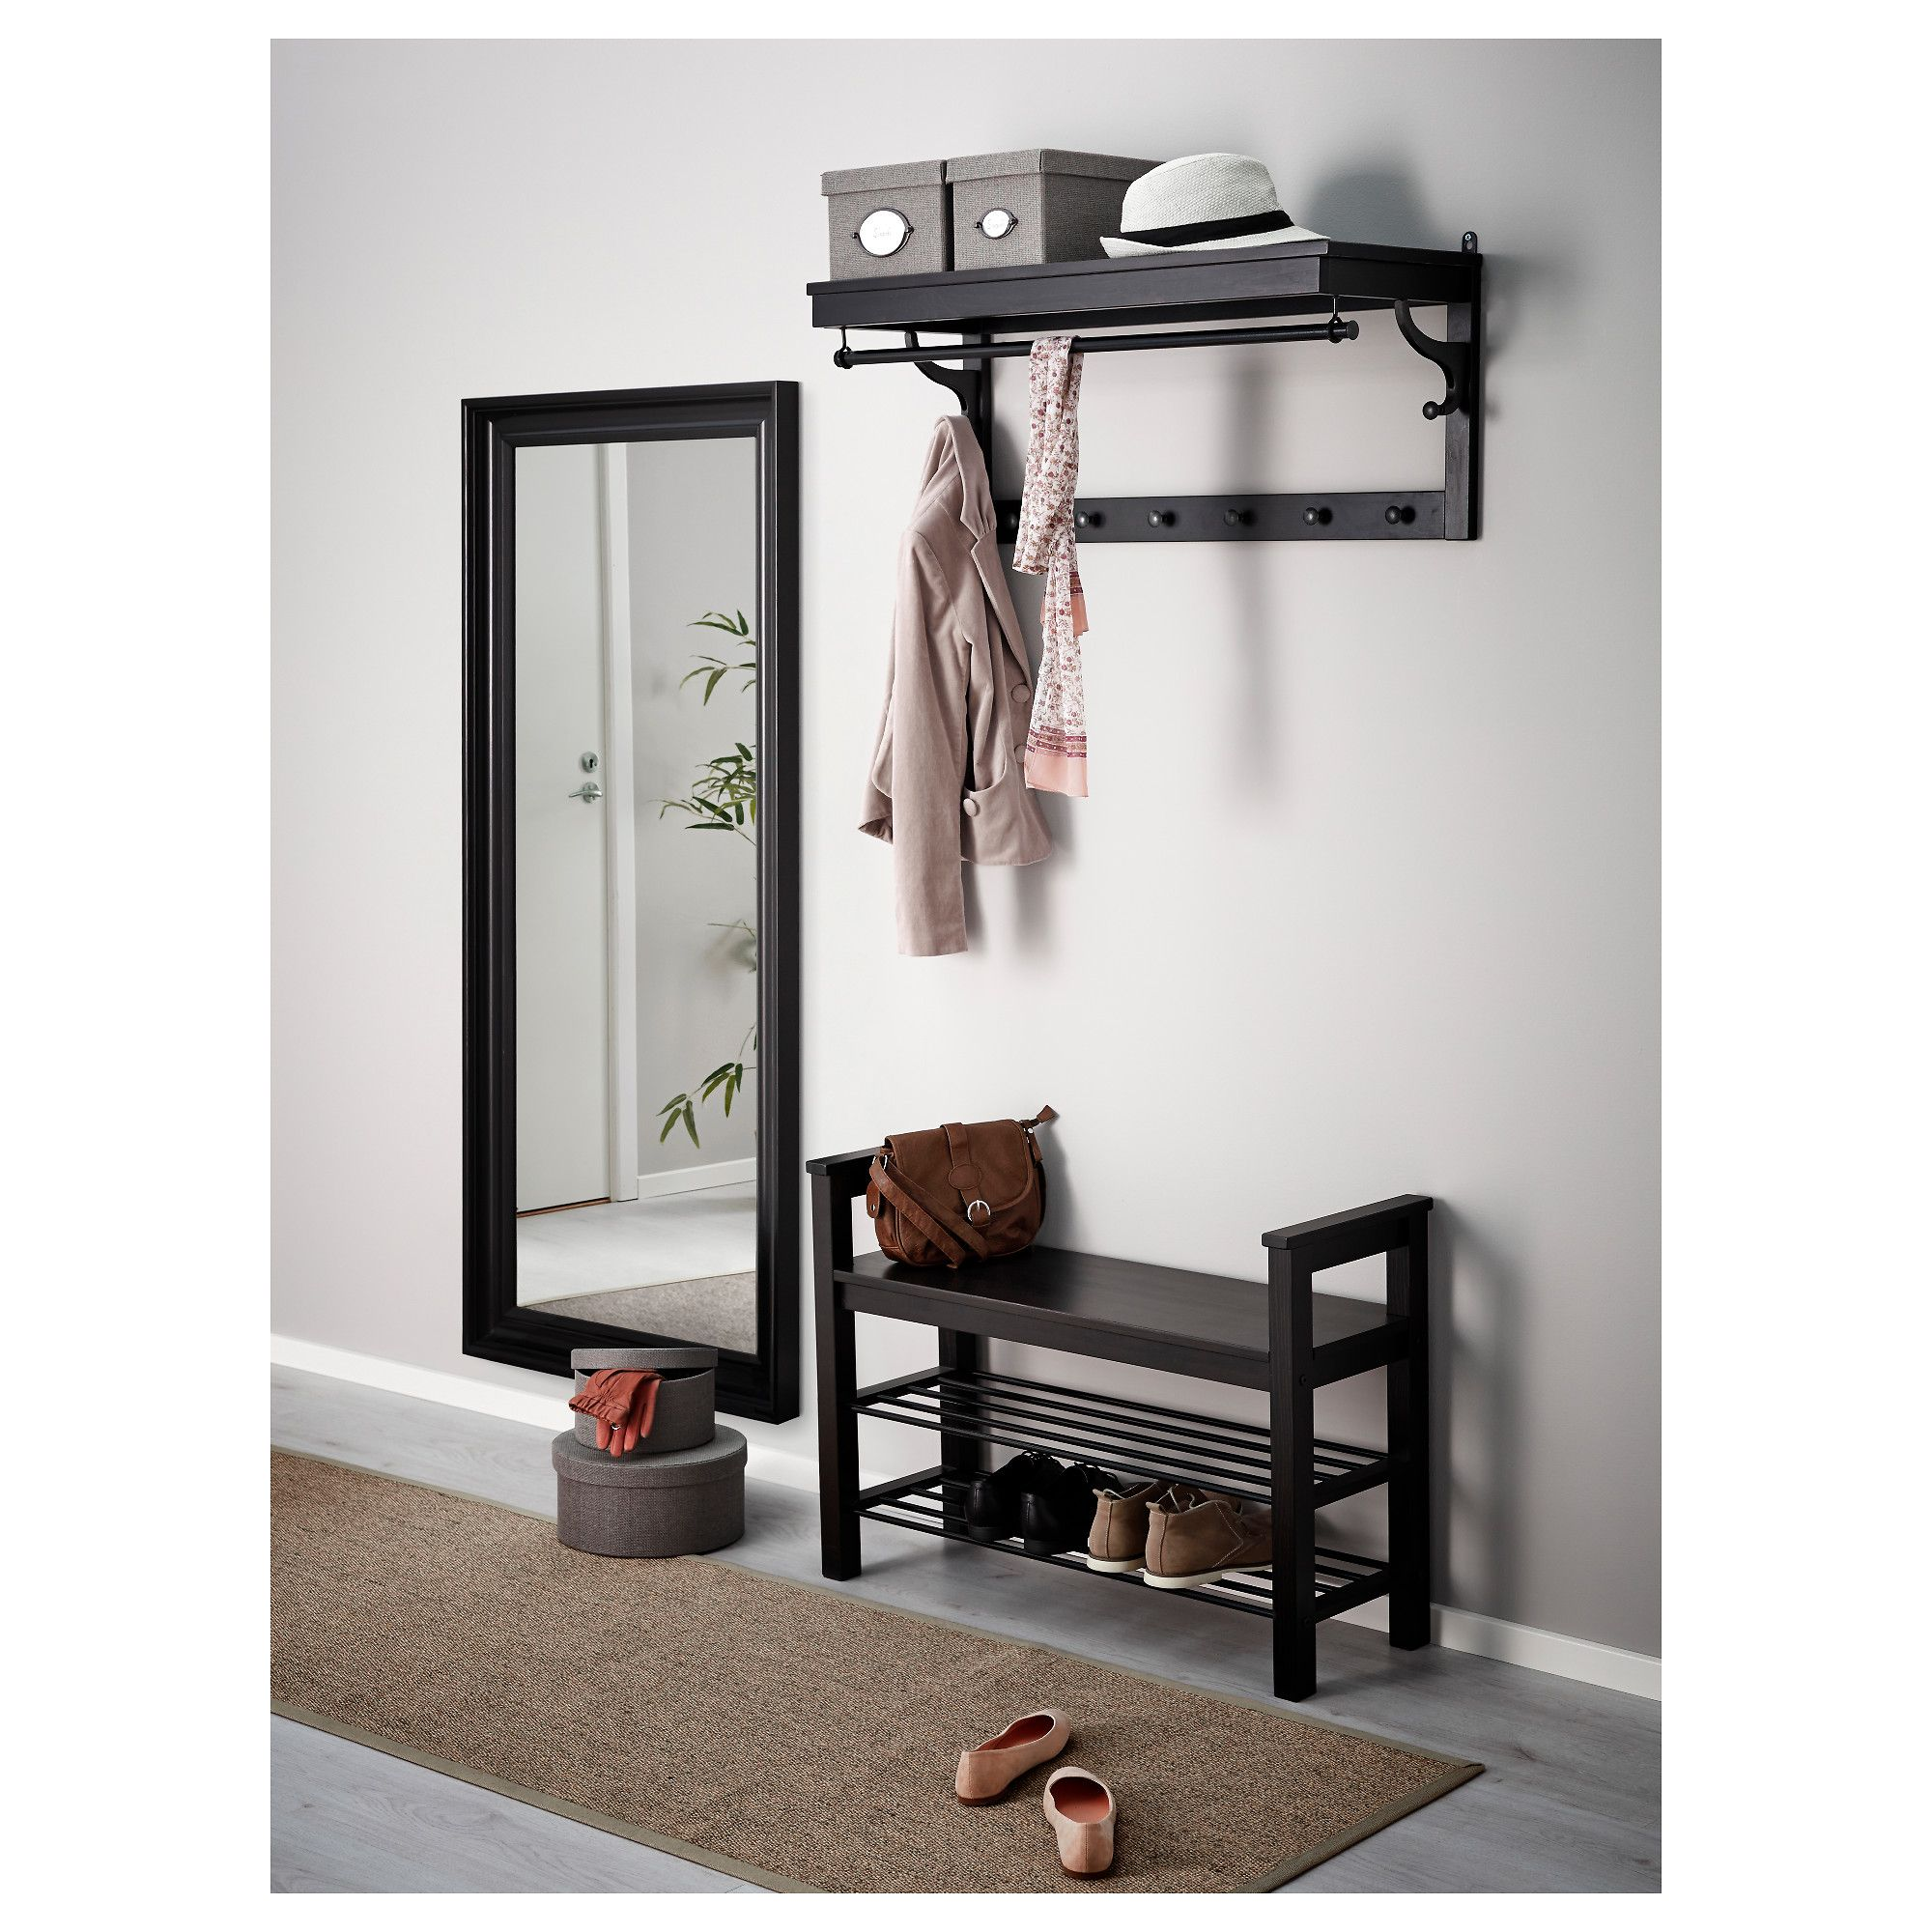 Ikea Hemnes Mirror Black Brown In 2019 Products